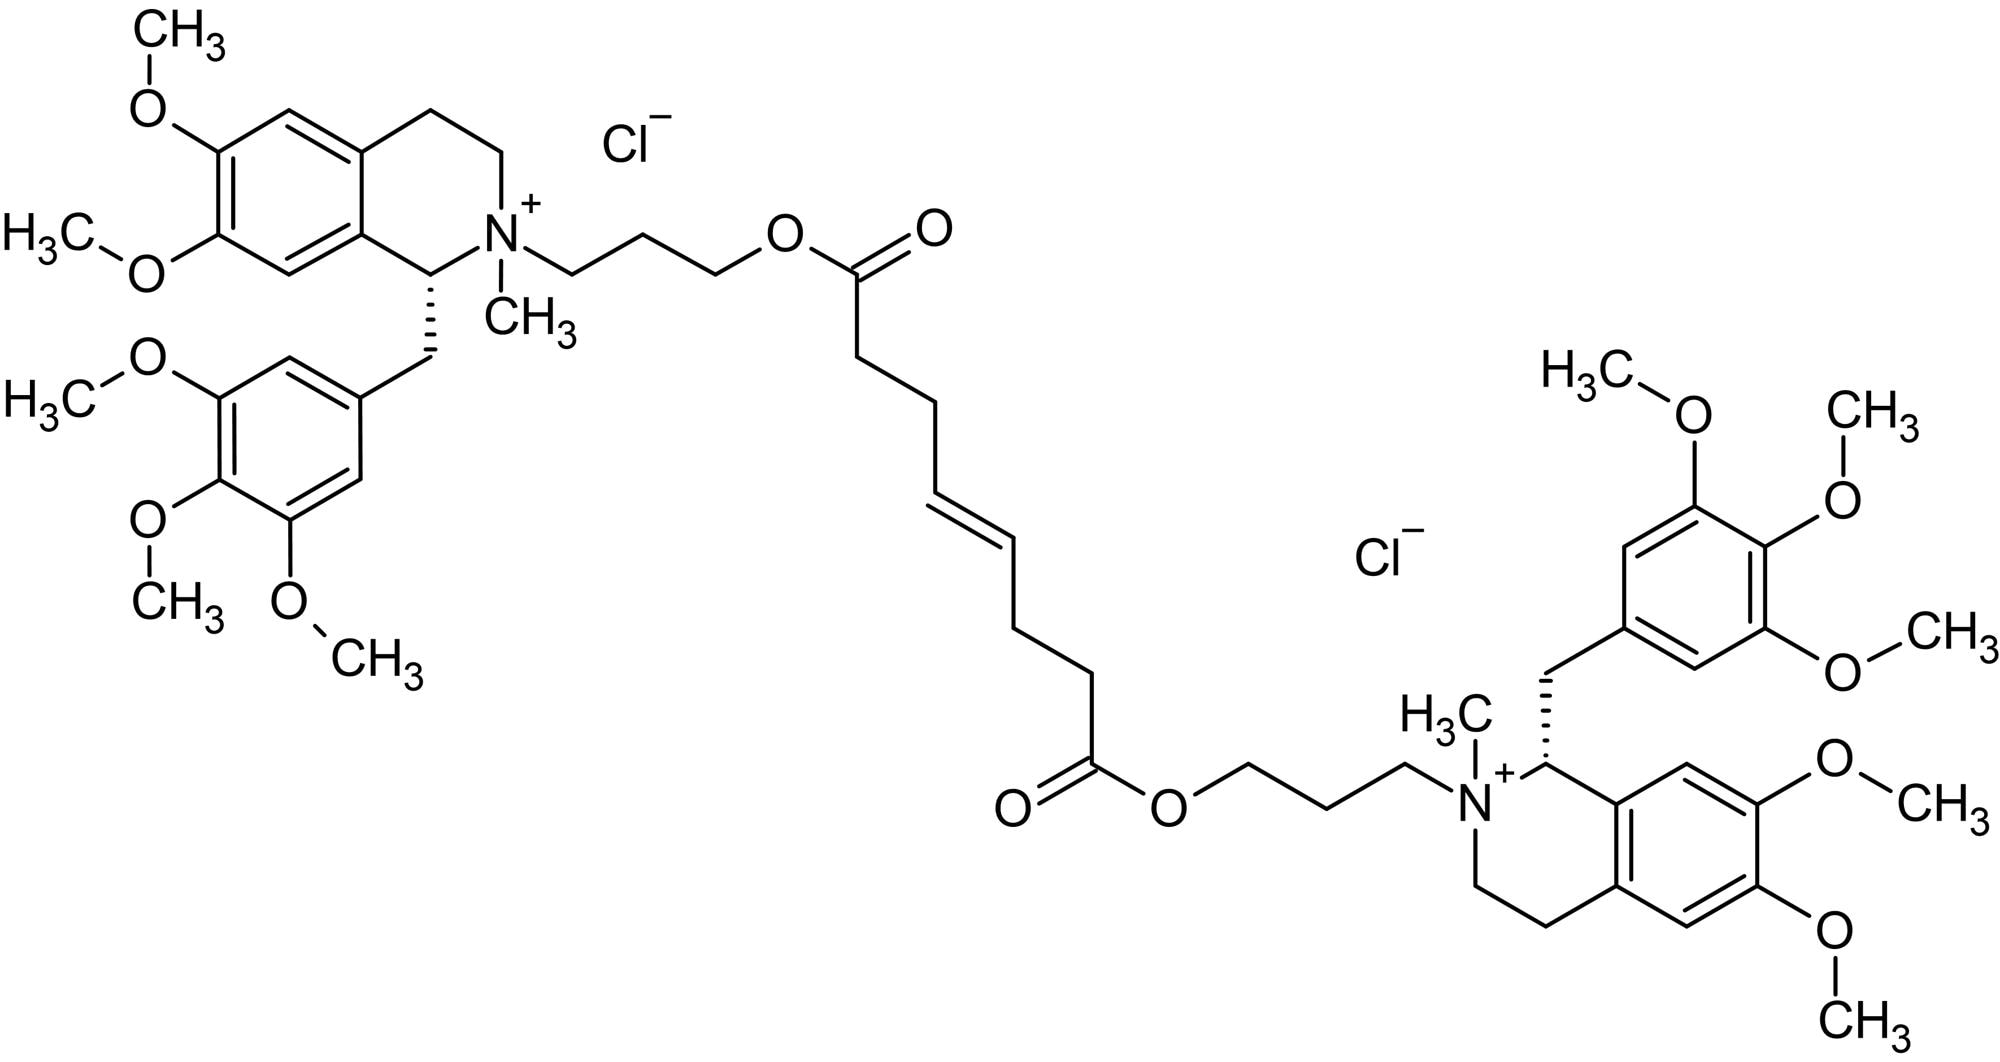 Chemical Structure - Mivacurium chloride, nicotinic acetylcholine antagonist (ab143667)